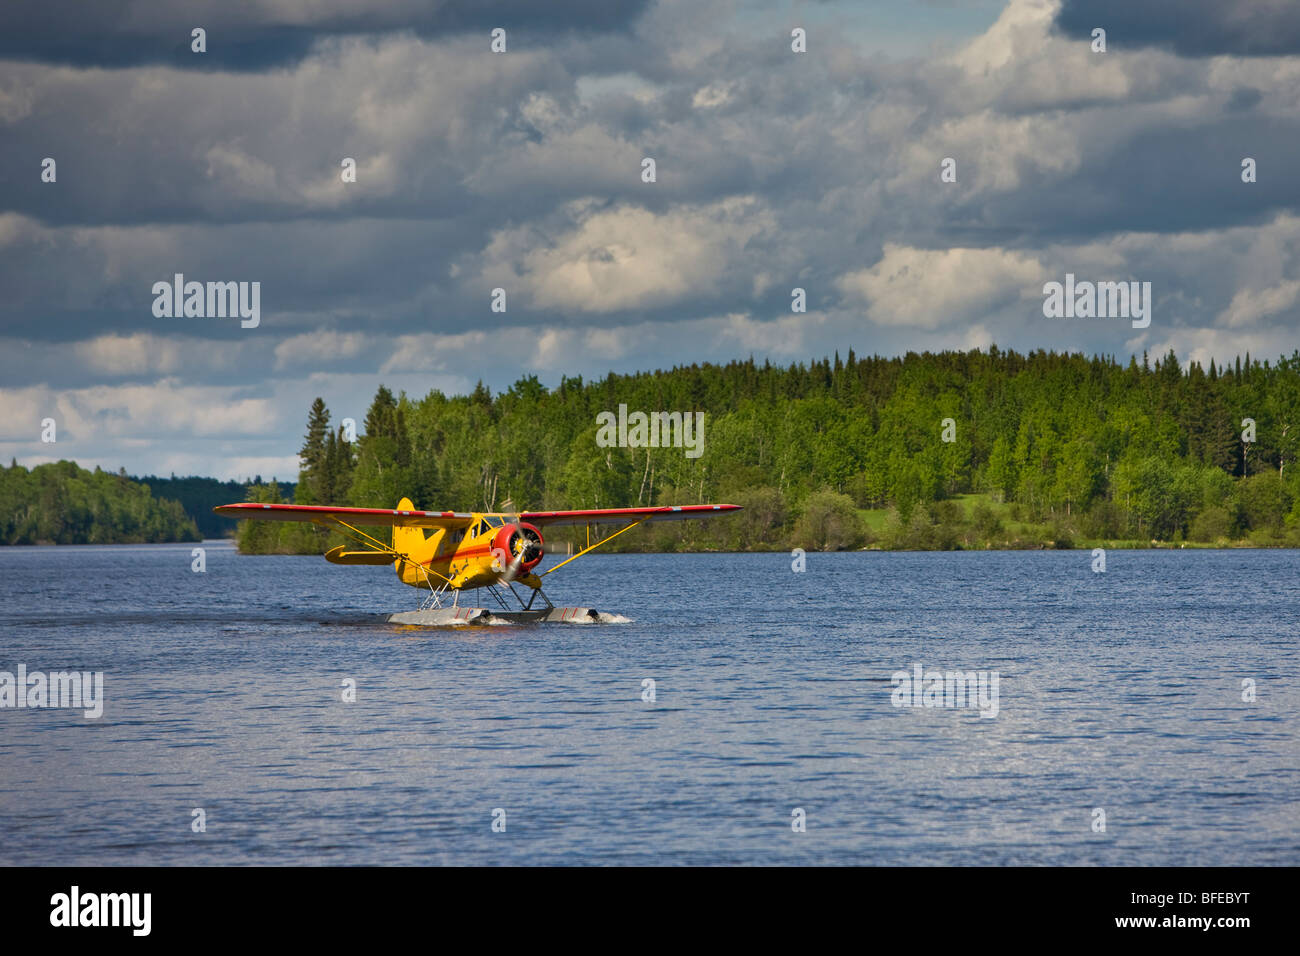 Norseman aircraft, Chimo Air Service, taxiing on the water in the town of Red Lake, Ontario, Canada - Stock Image